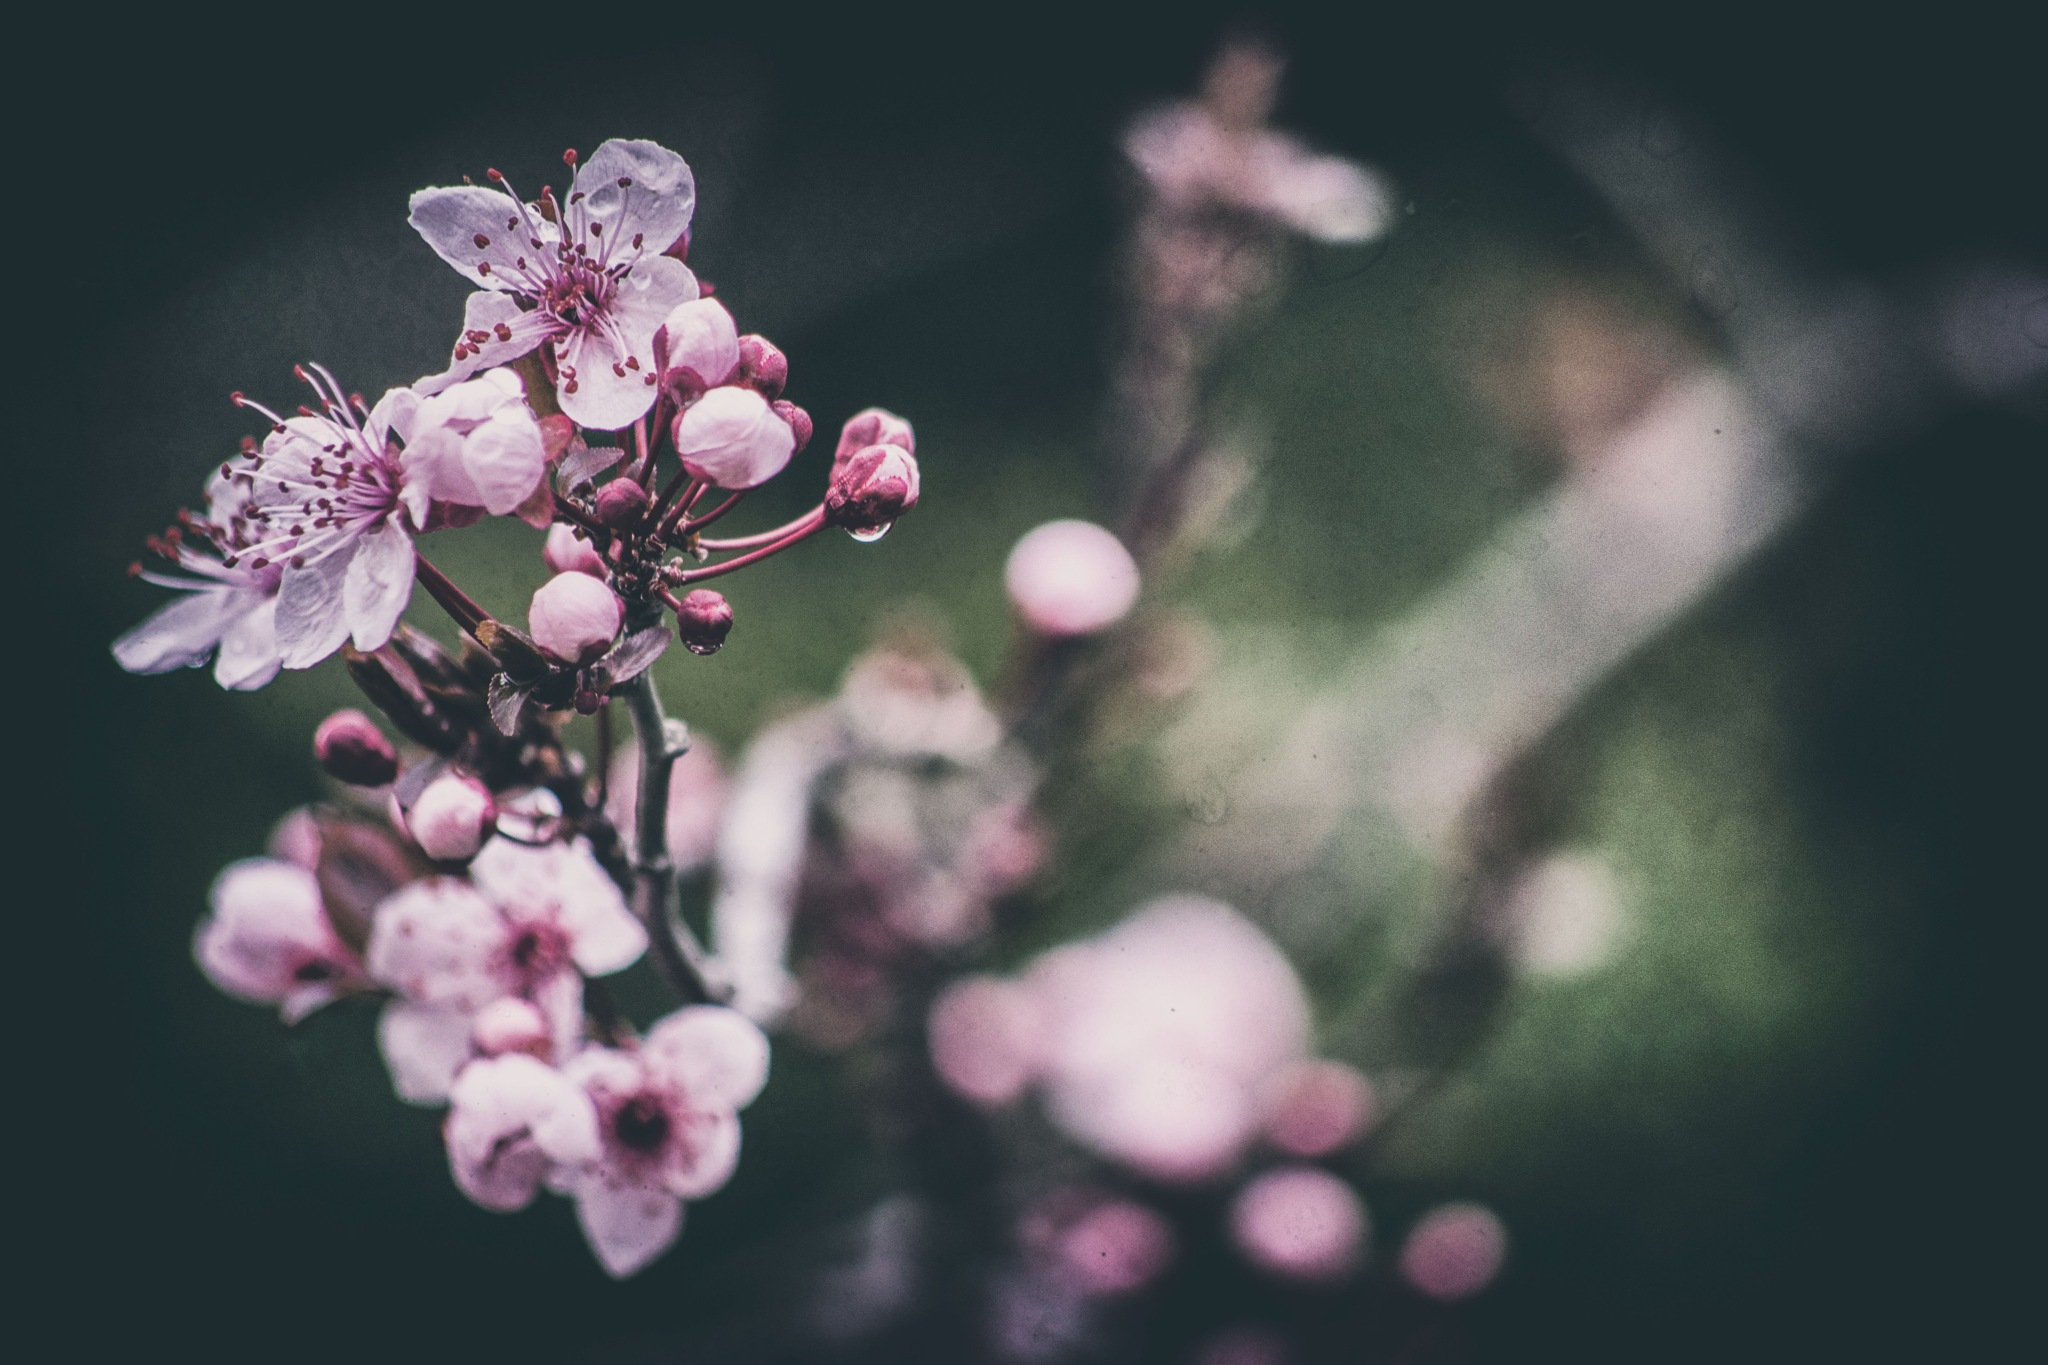 blossom 2 by Angelo Petrozza